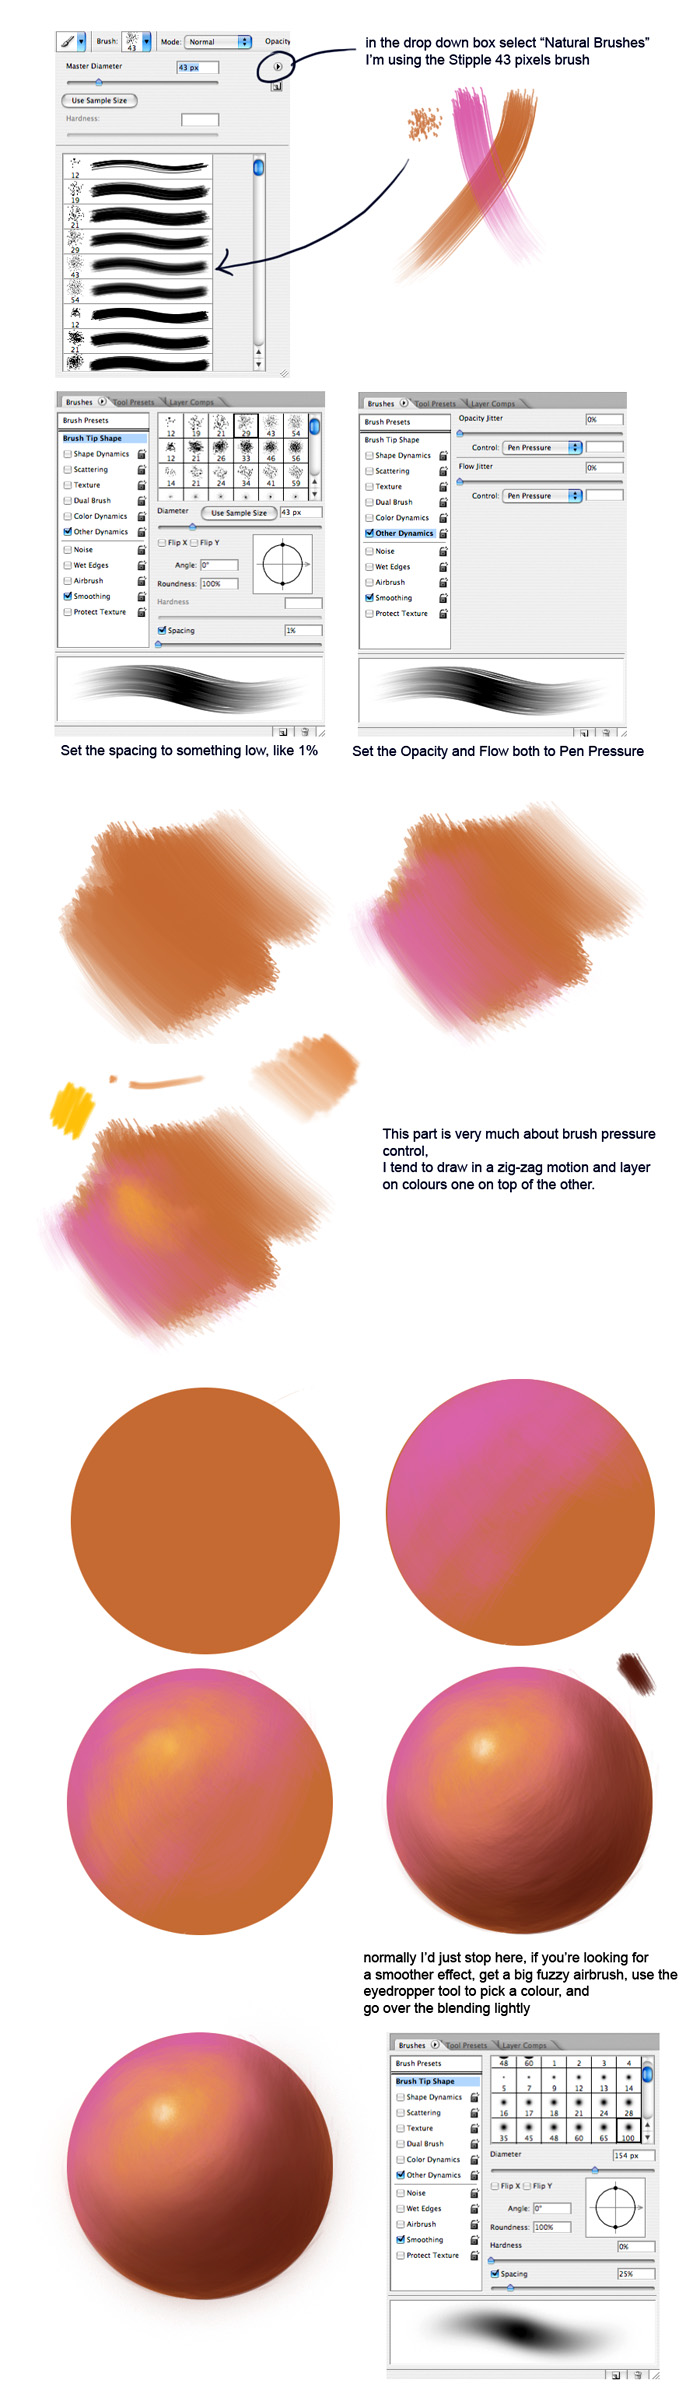 Will it blend? Photoshop Brushes Tutorial part III ~ The Art